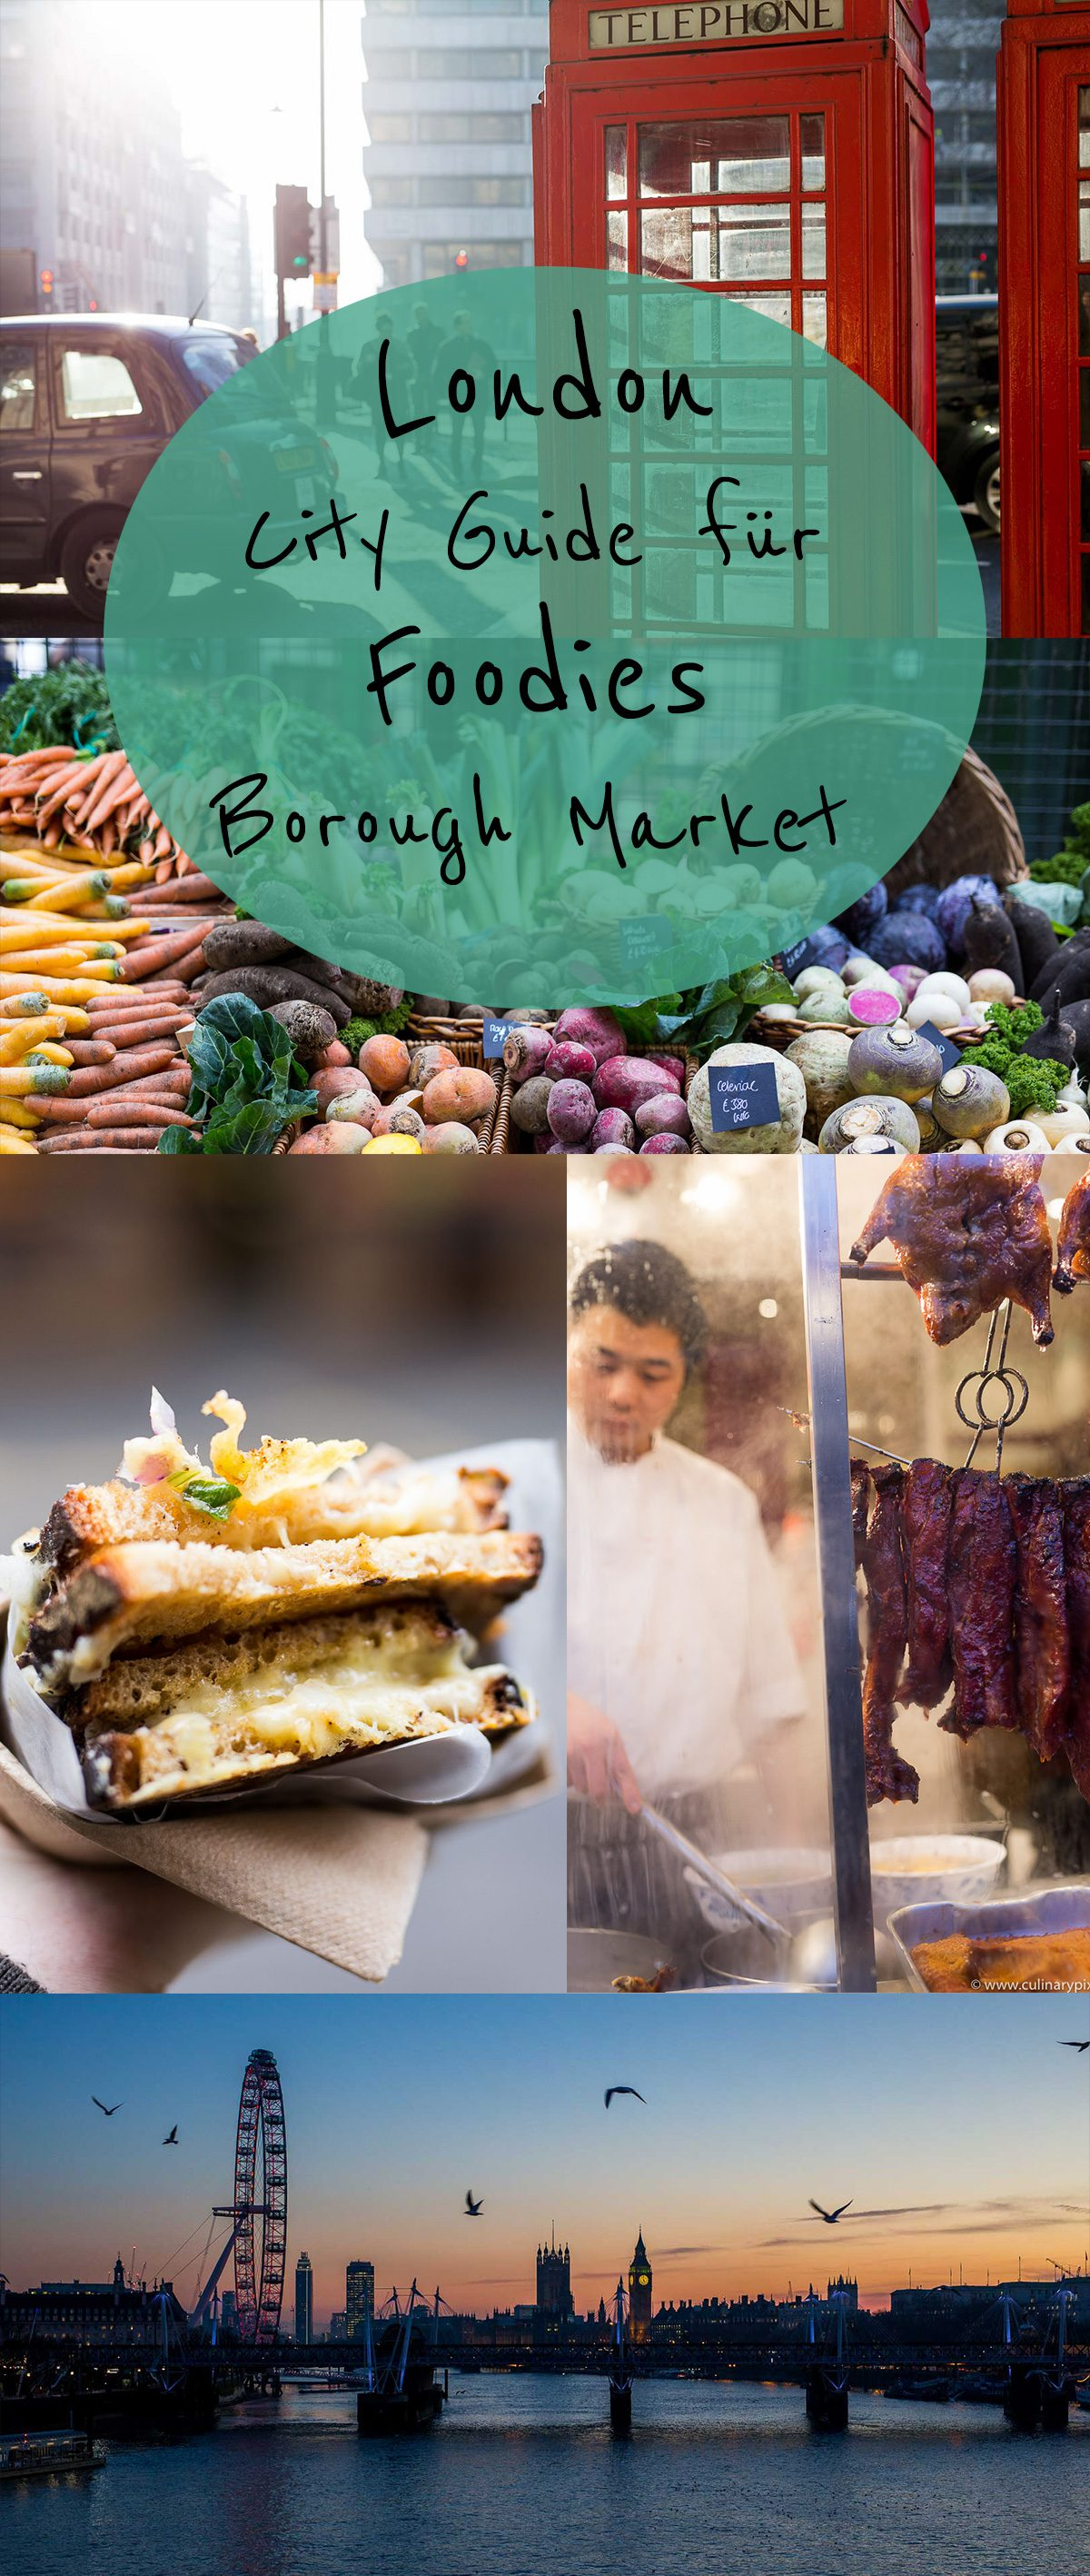 London City Guide für Foodies inkl. Borough Market